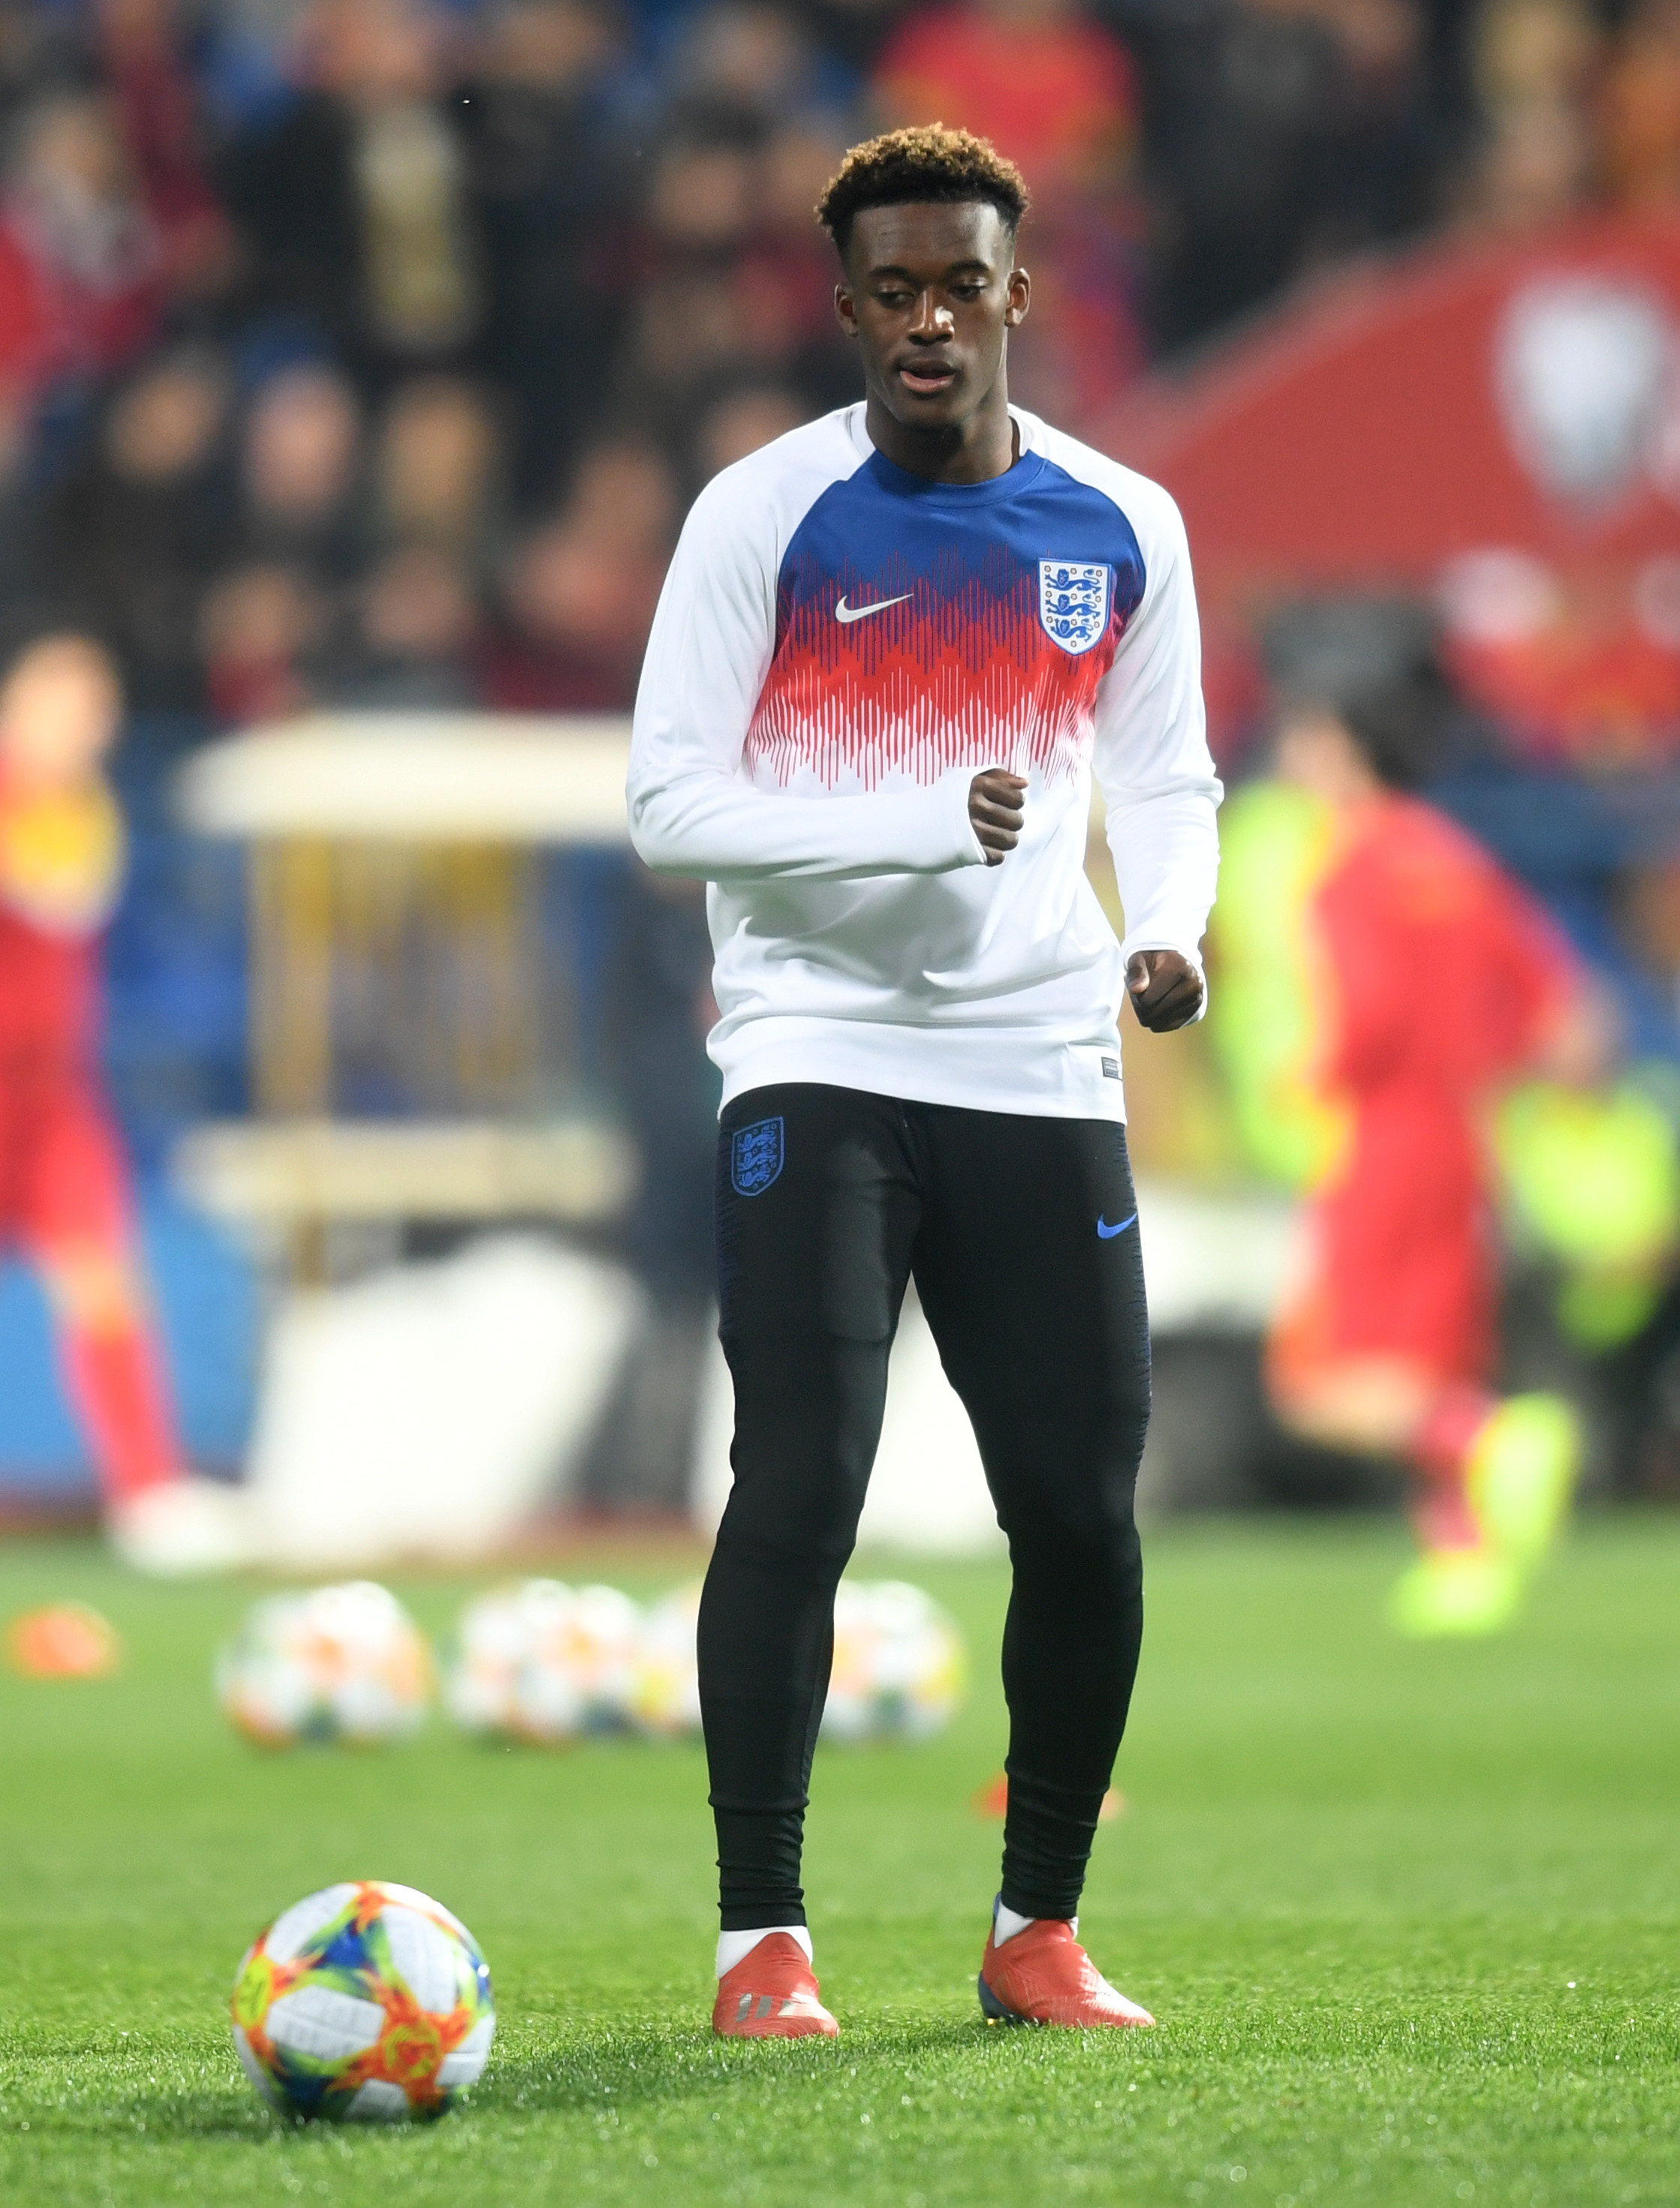 Chelsea will refuse to sell Hudson-Odoi, no matter what — report